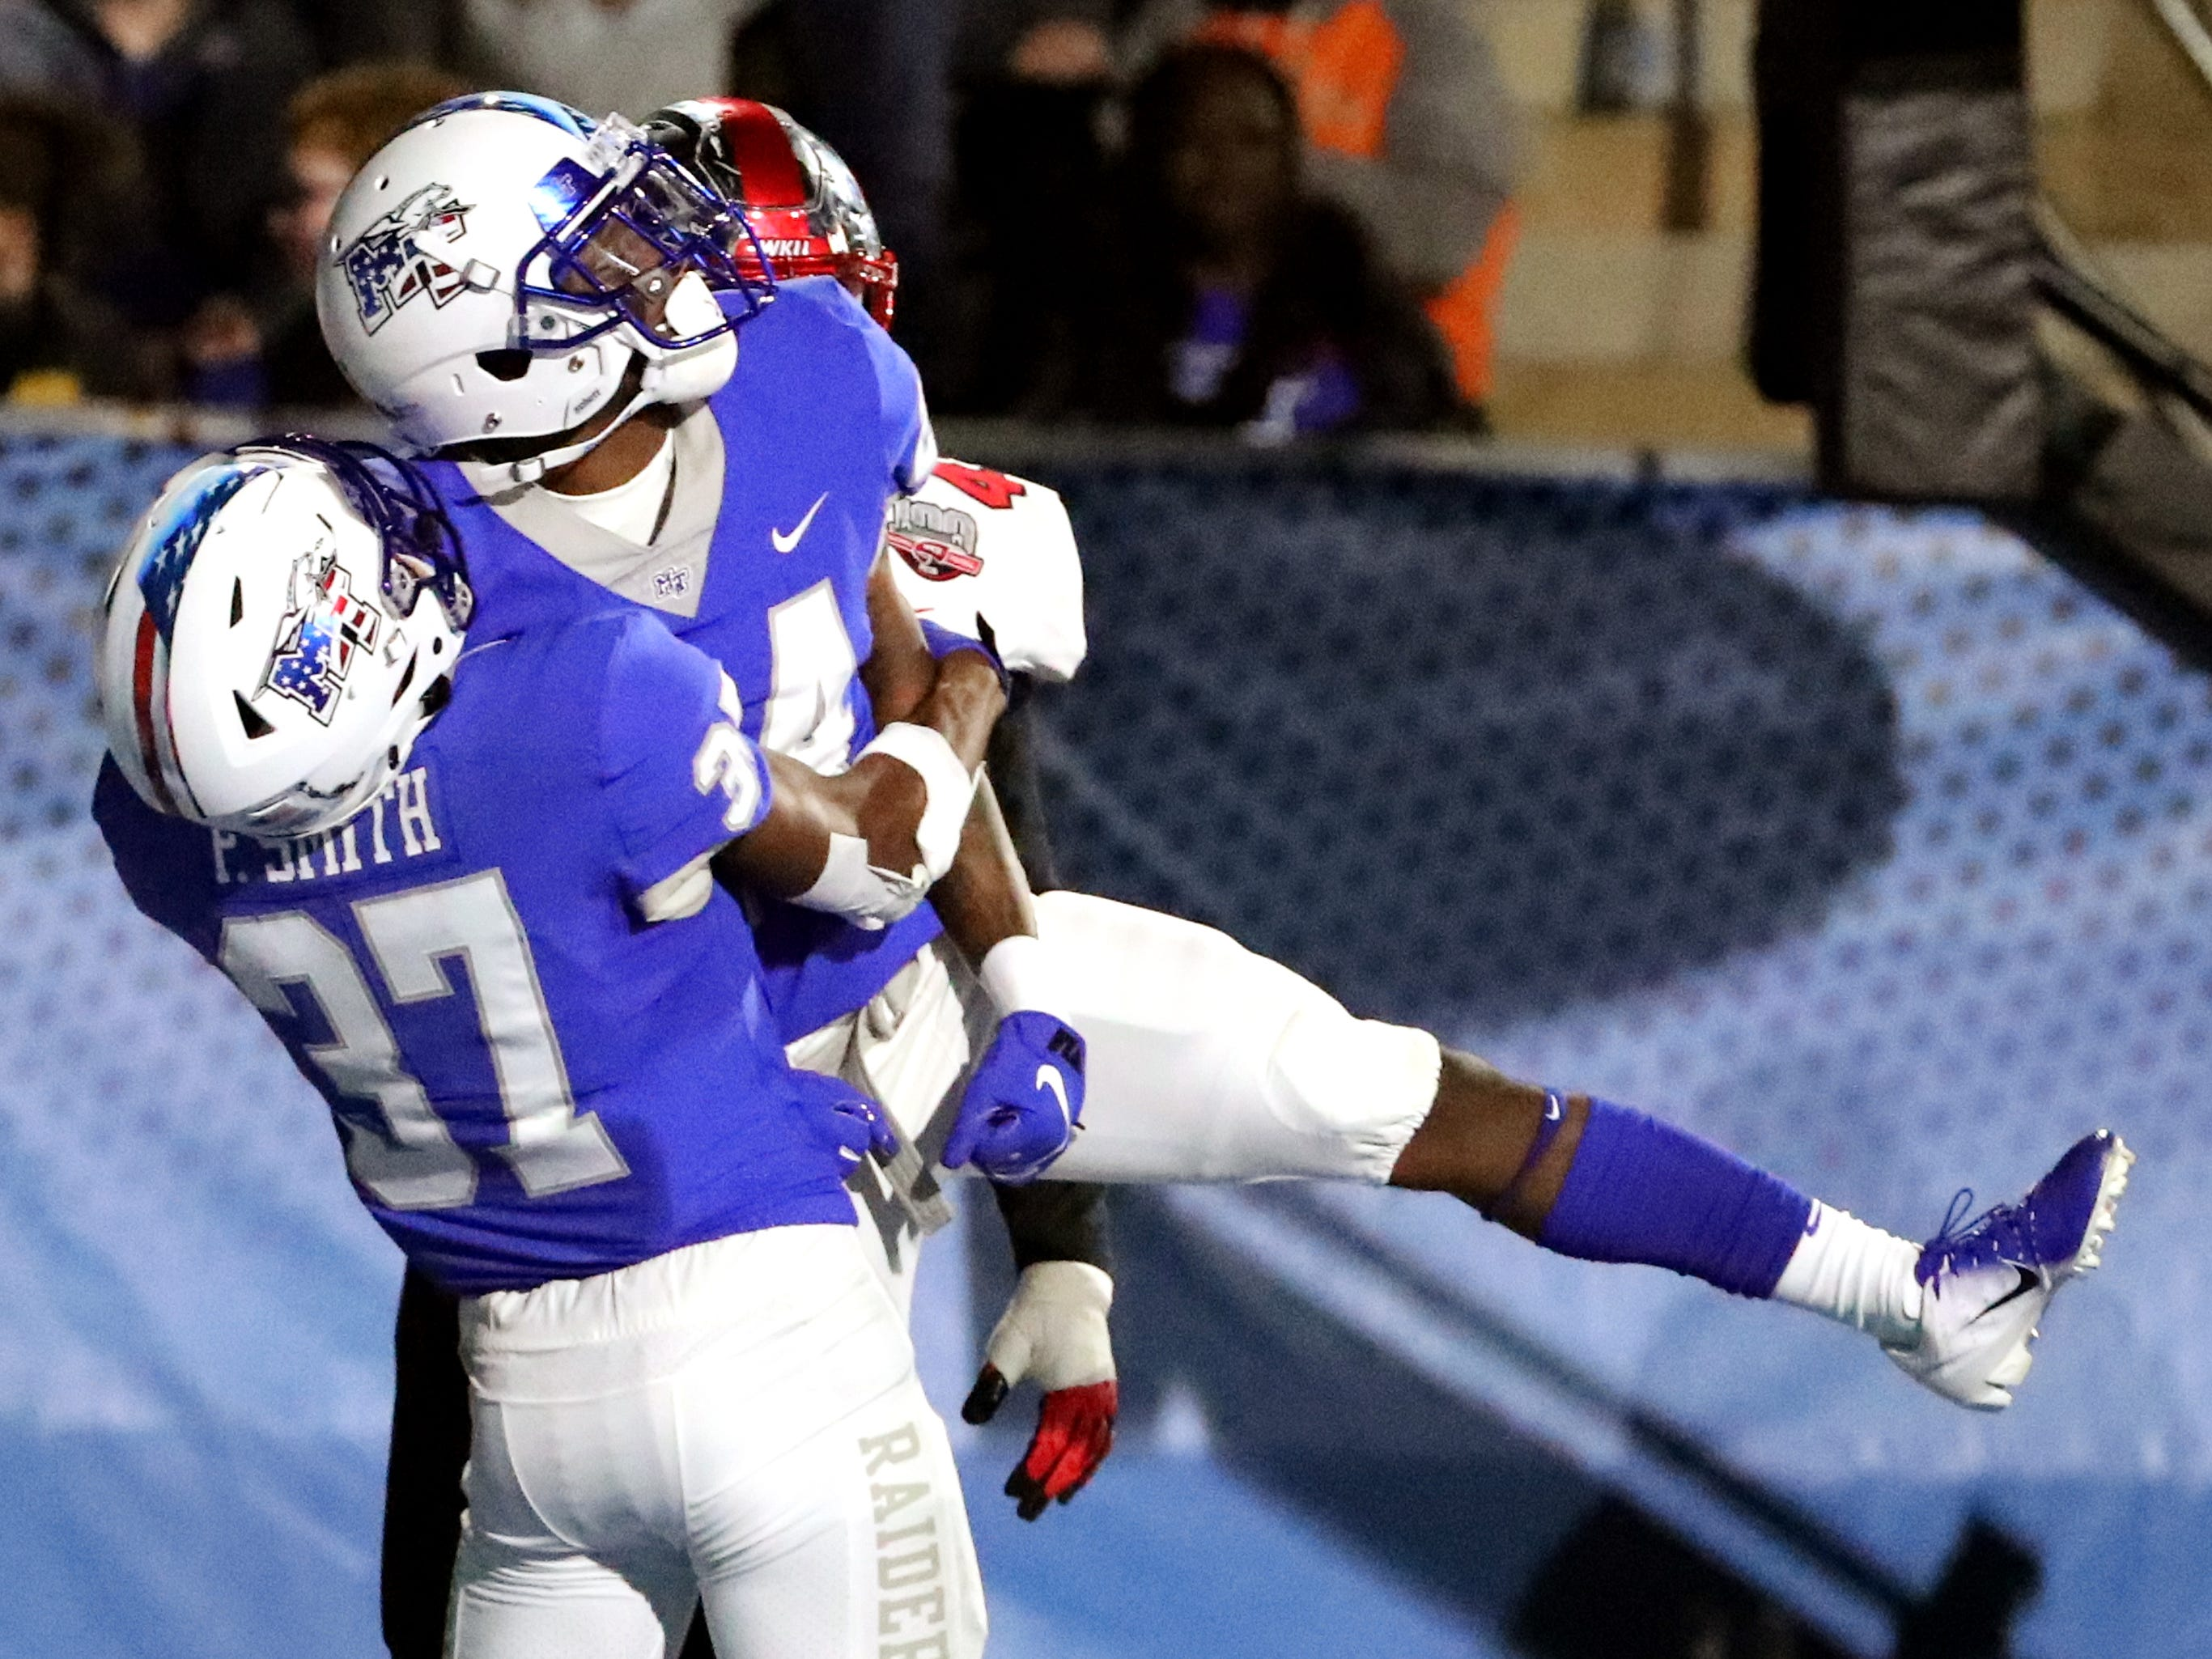 Zack Dobson, older brother of Zaevion Dobson, scores first career touchdown for MTSU